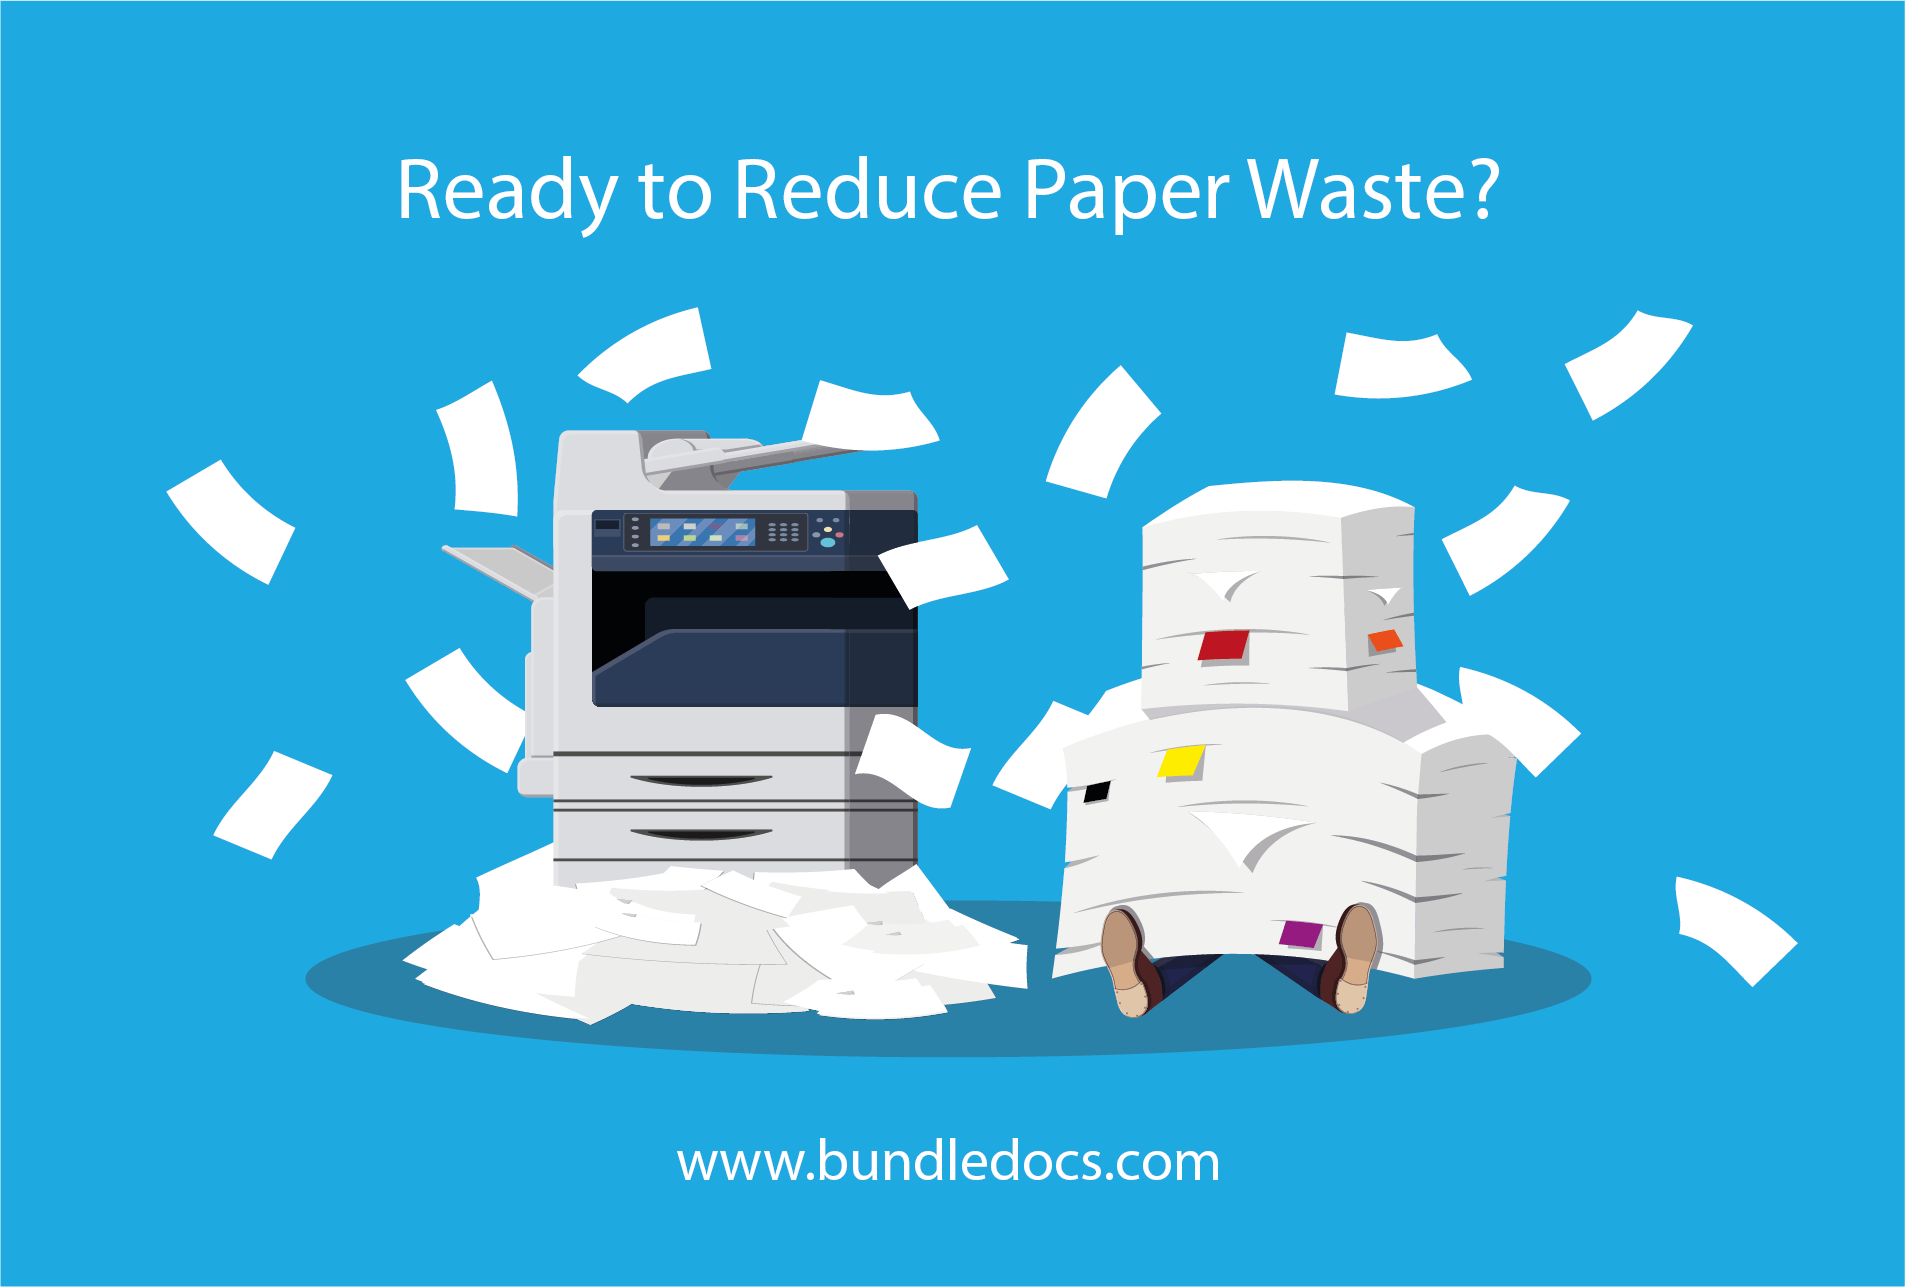 Bundledocs_Ready_To_Reduce_Paper_Waste.png